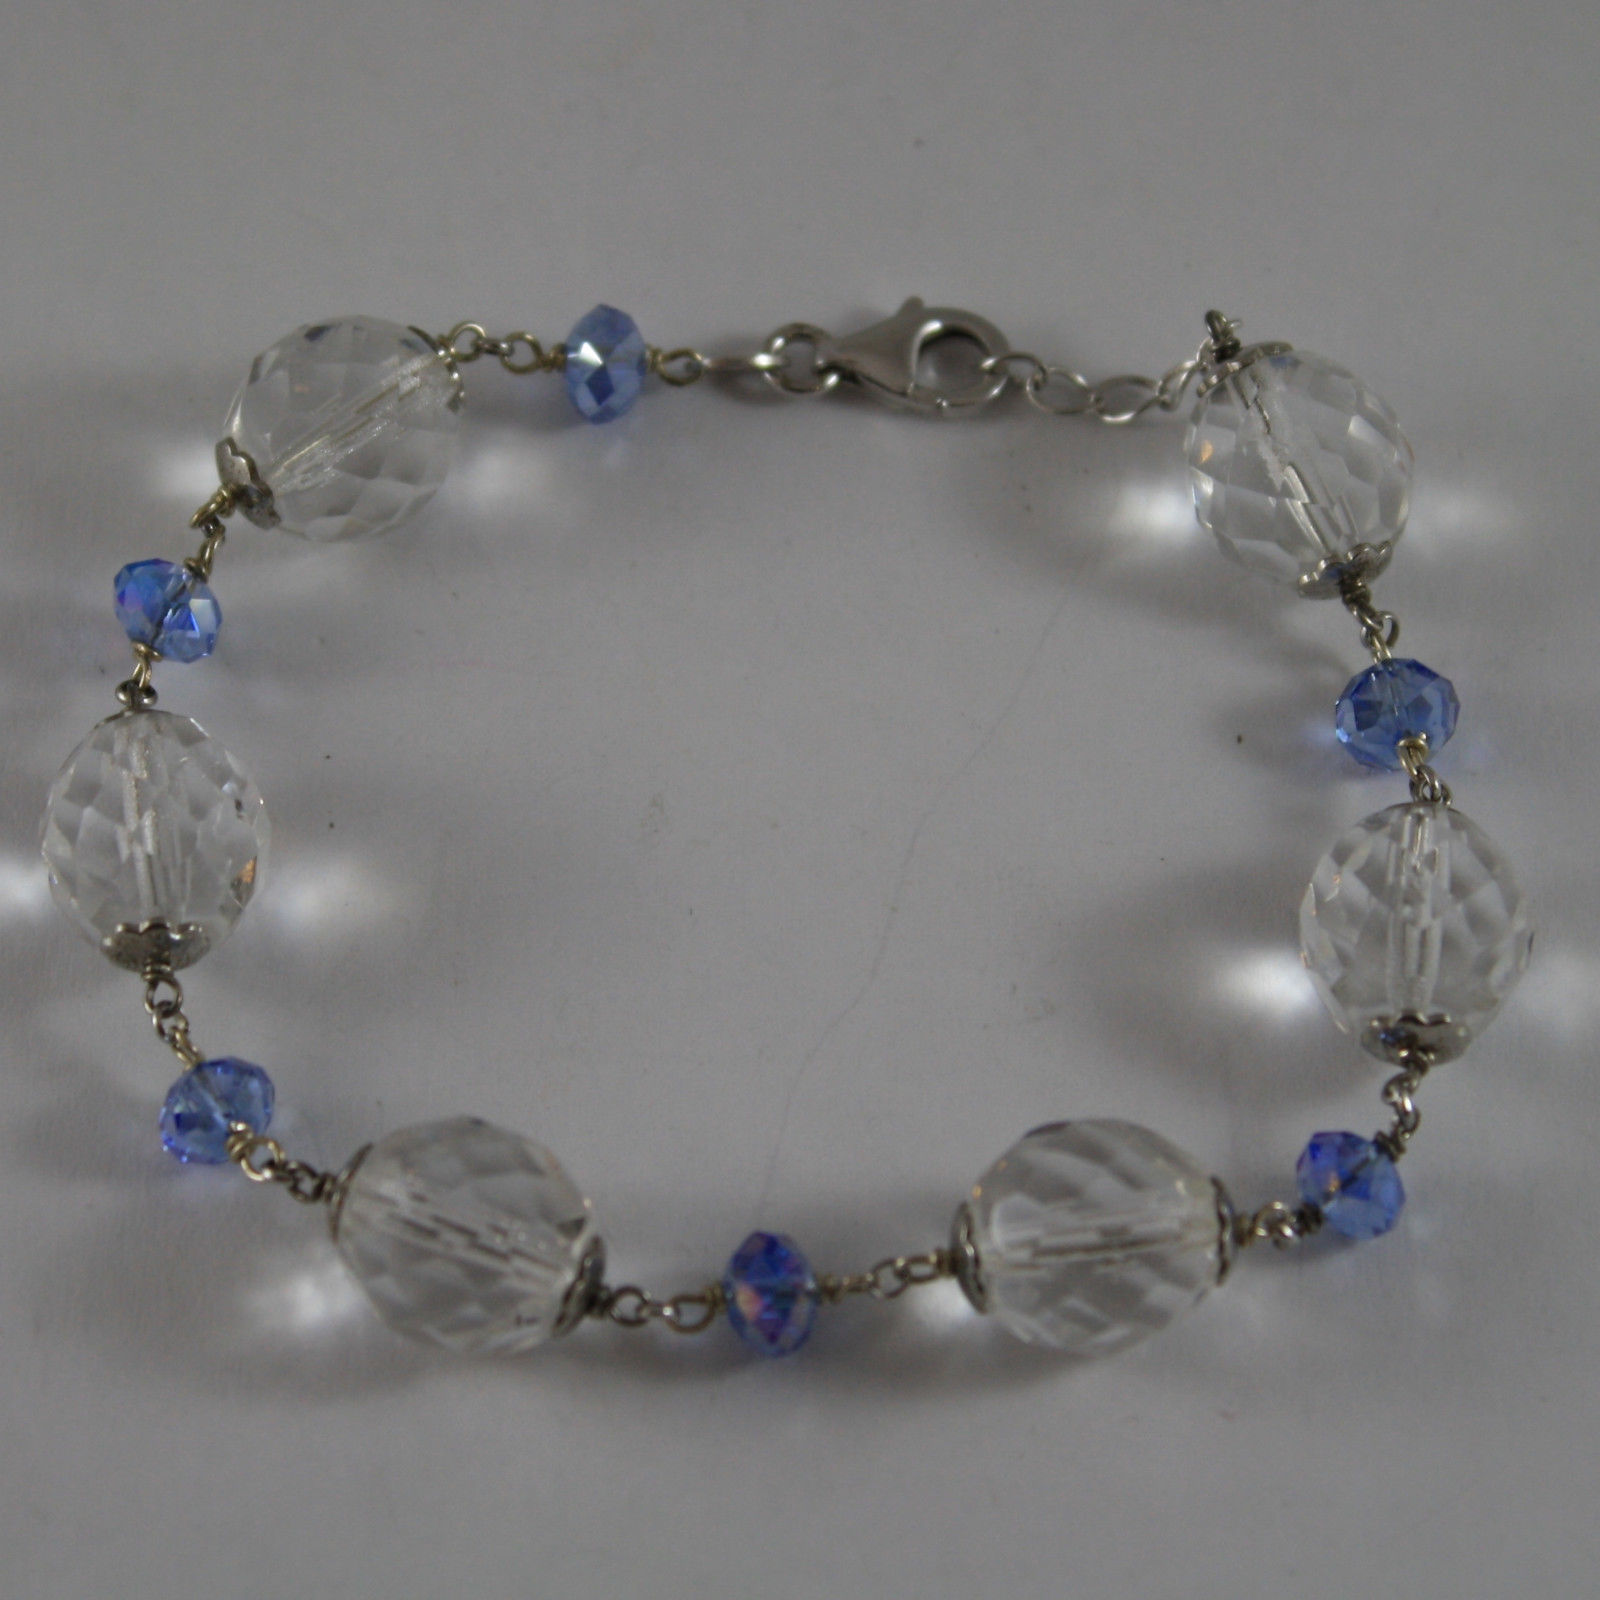 925. RHODIUM SILVER BRACELET WITH BLUE AND TRANSPARENT CRYSTALS